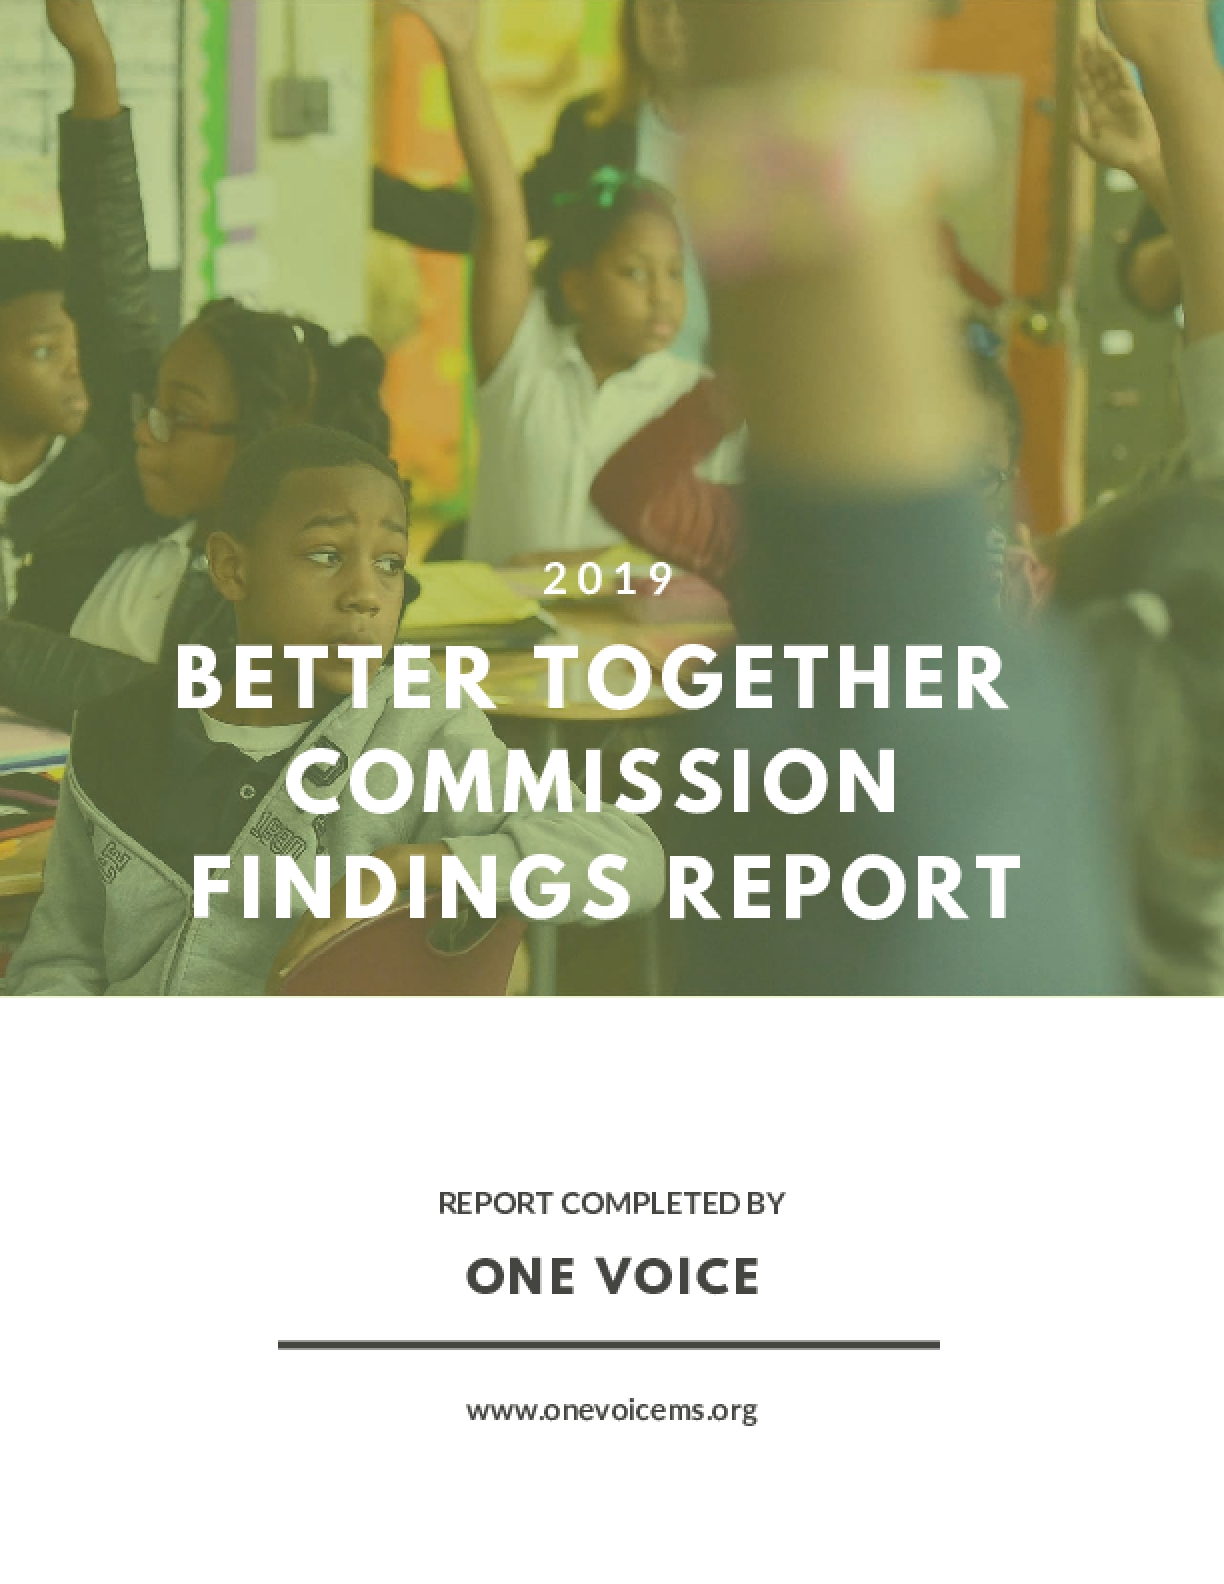 Better Together Commission Findings Report 2019